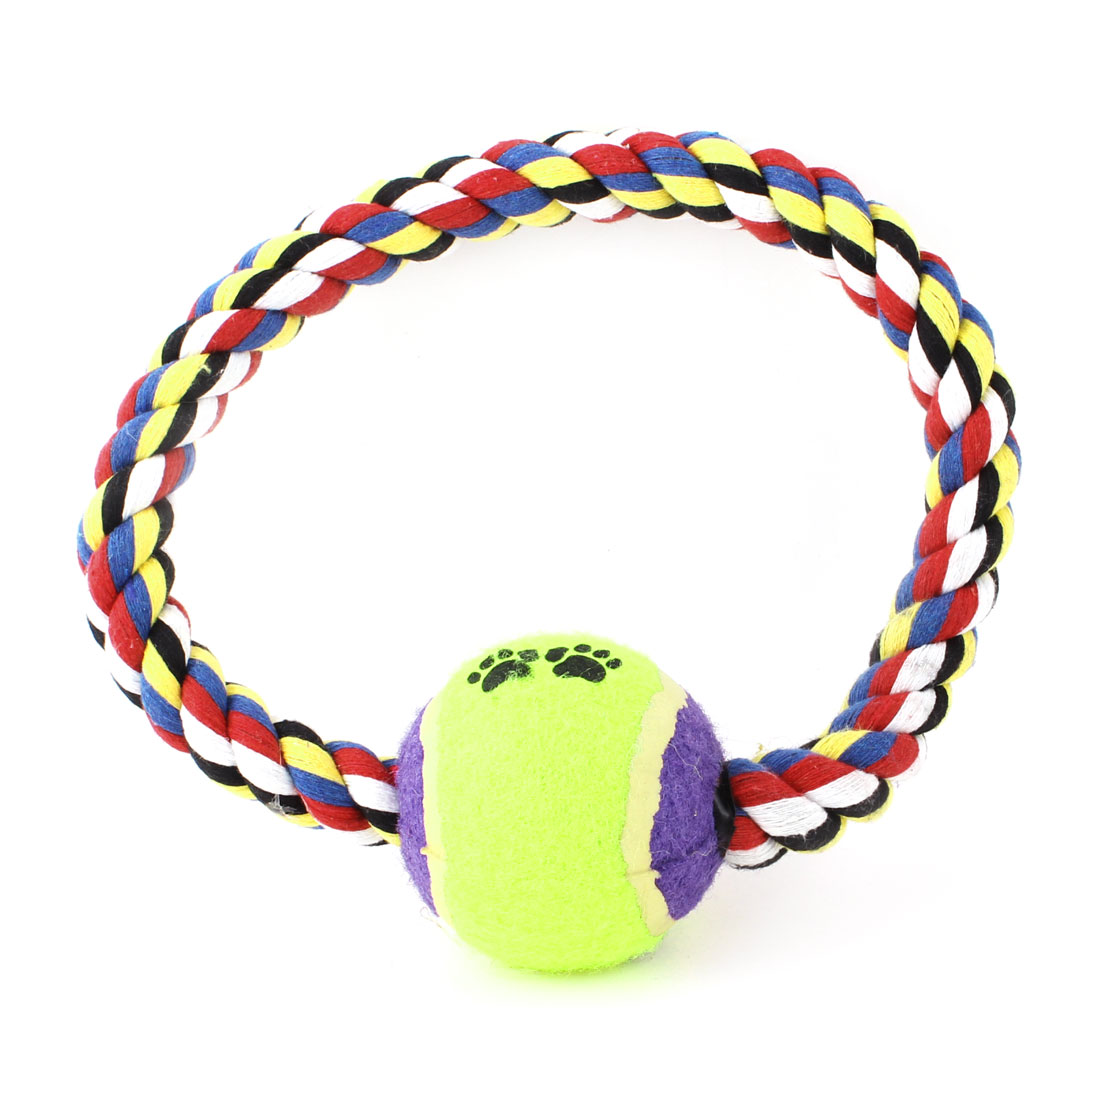 Colorful Knot Rope Purple Yellowgreen Ball Decor Pet Puppy Chew Tug Toy